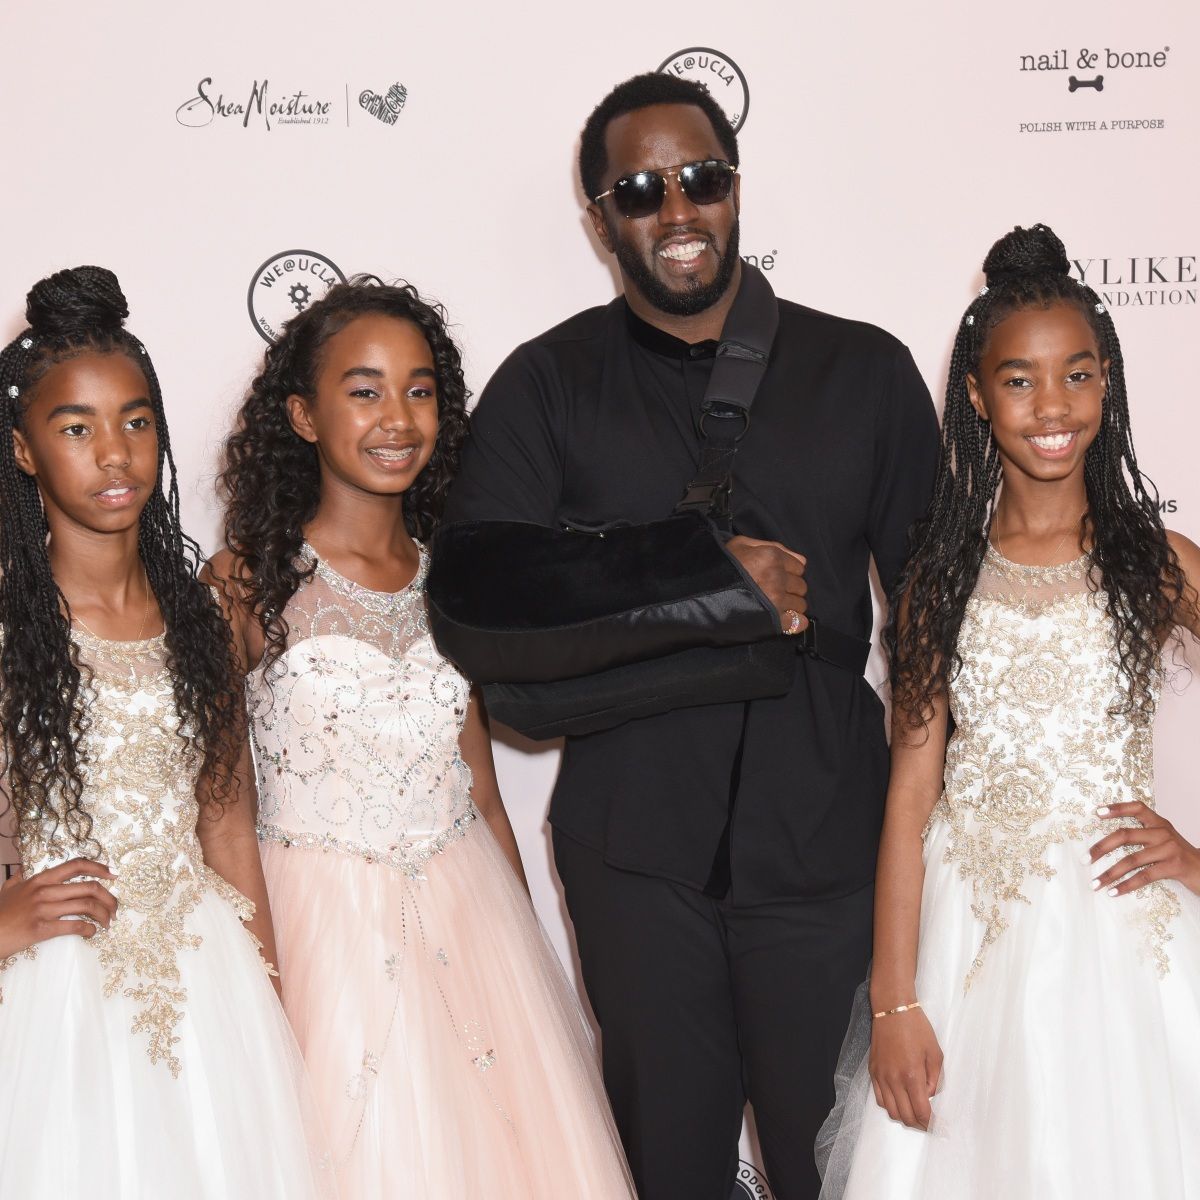 Sean 'Diddy' Combs Steps Out With Daughters Ahead of First Mother's Day Without Kim Porter